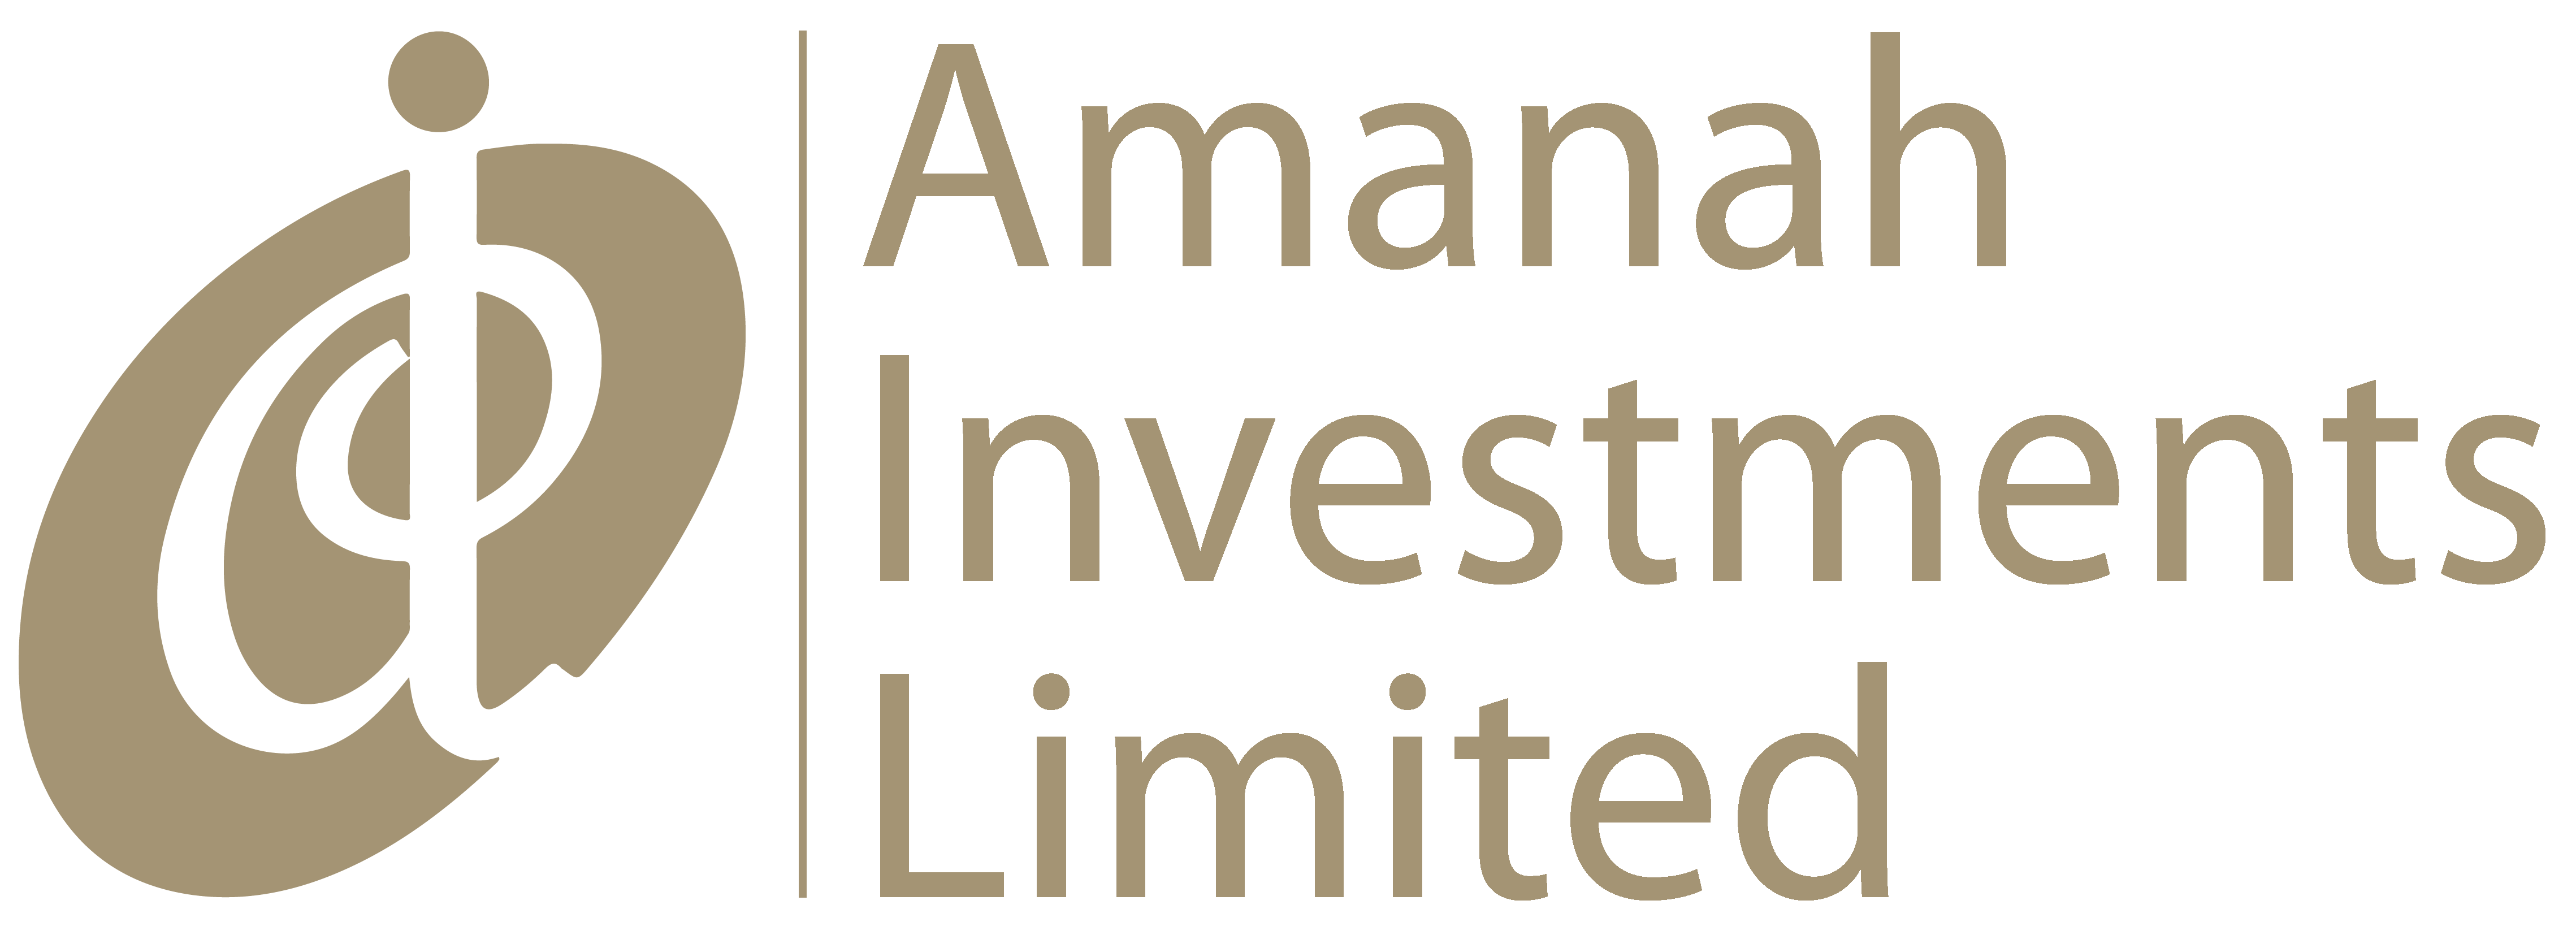 Amanah Investment Limited